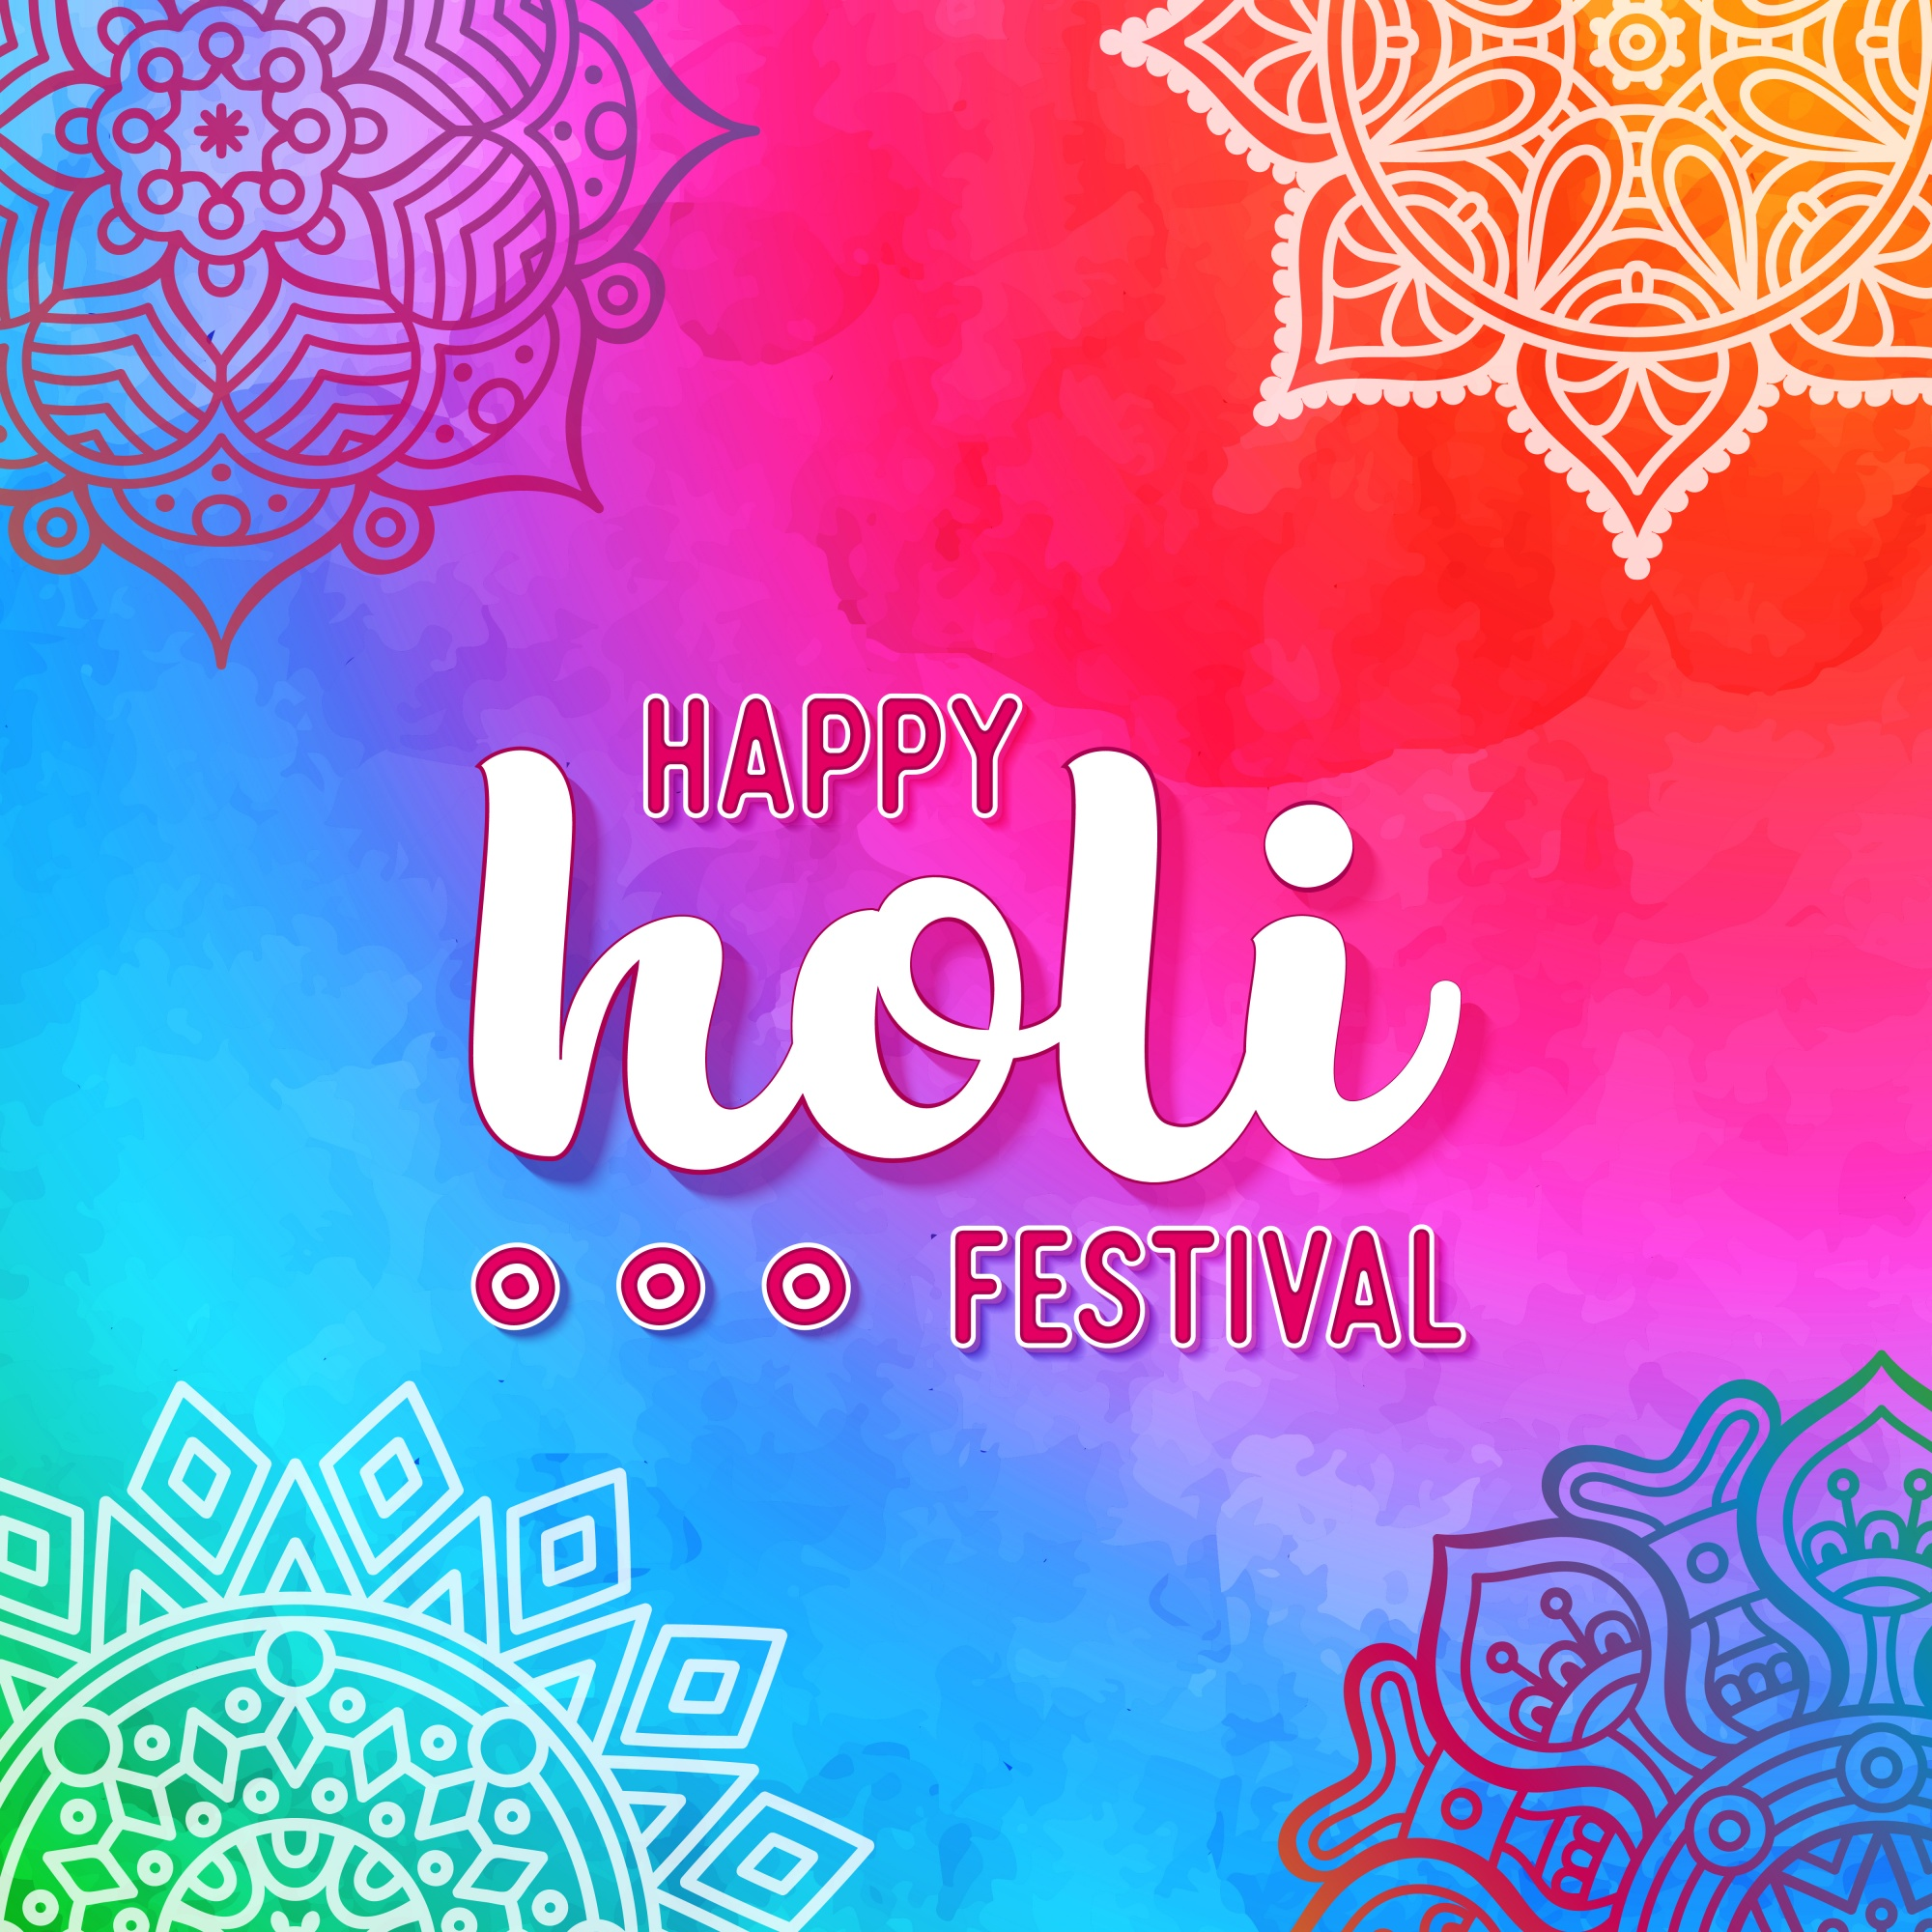 Colorful watercolor background of holi festival